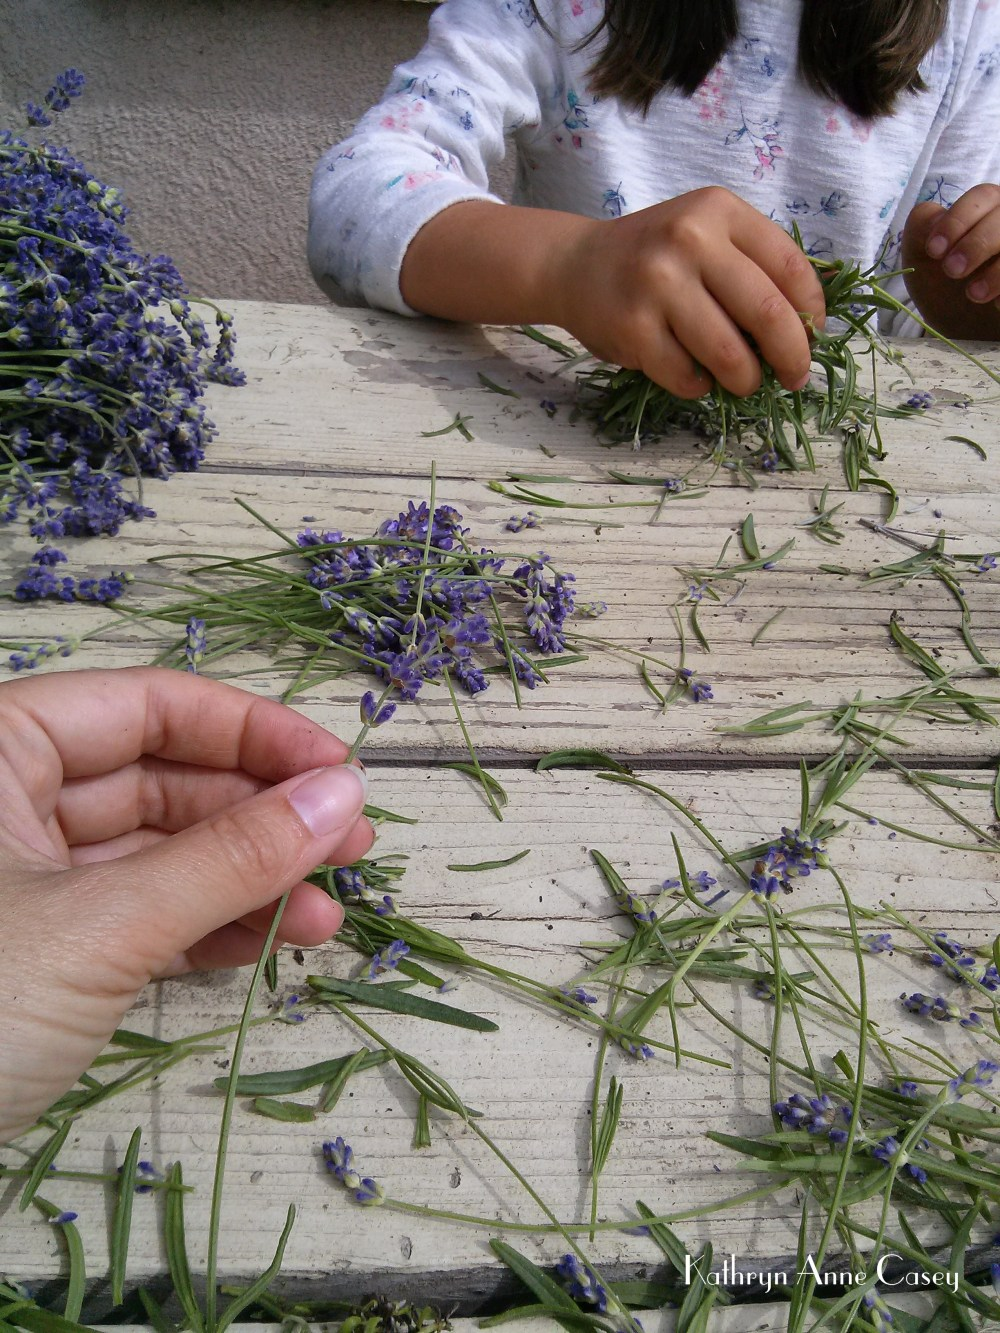 Mother and daughter separating lavender buds from stalks